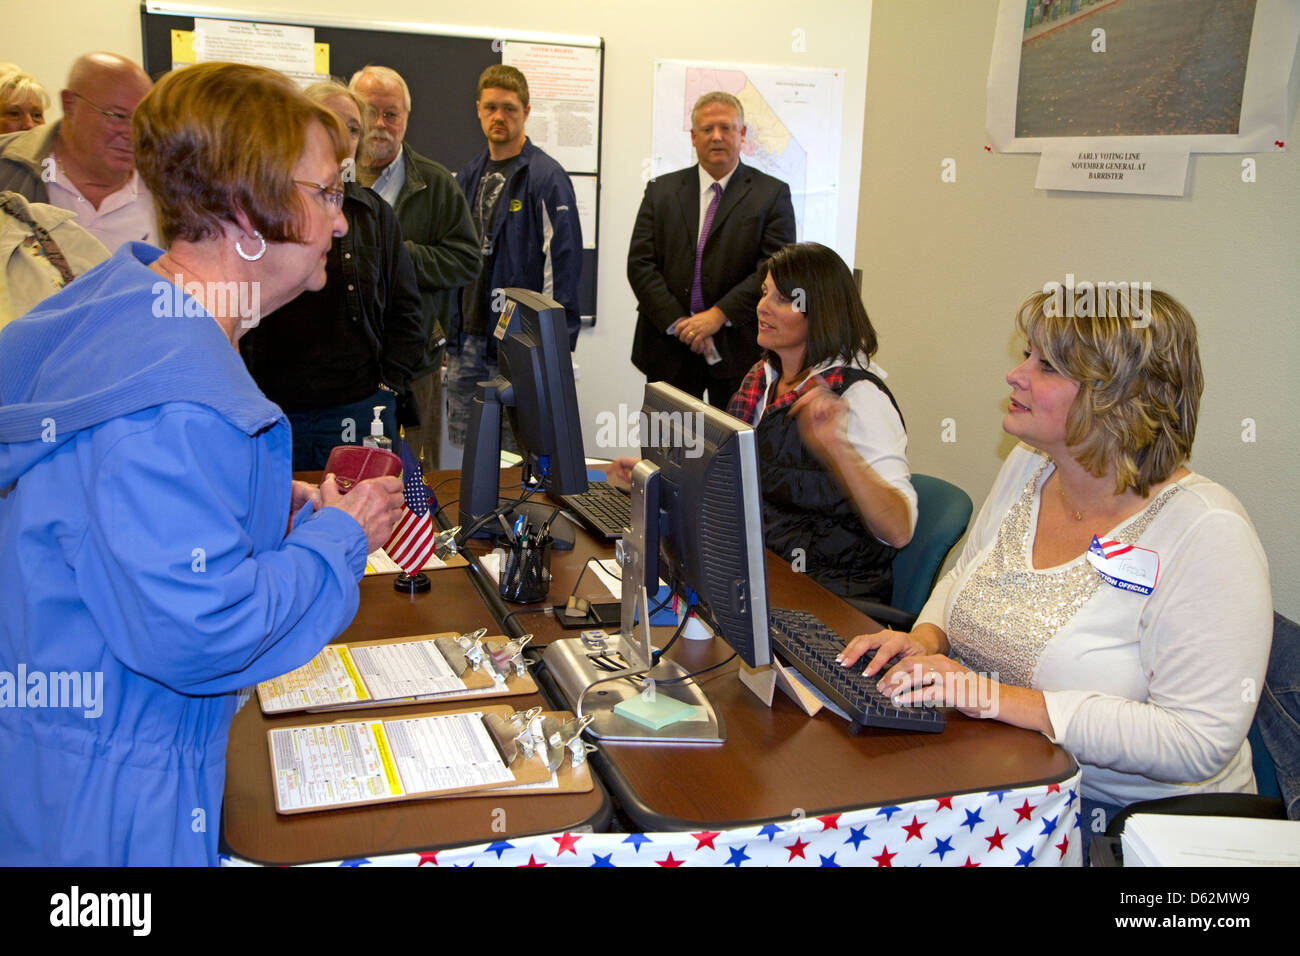 Voter checking in at a polling station in Boise, Idaho, USA. - Stock Image